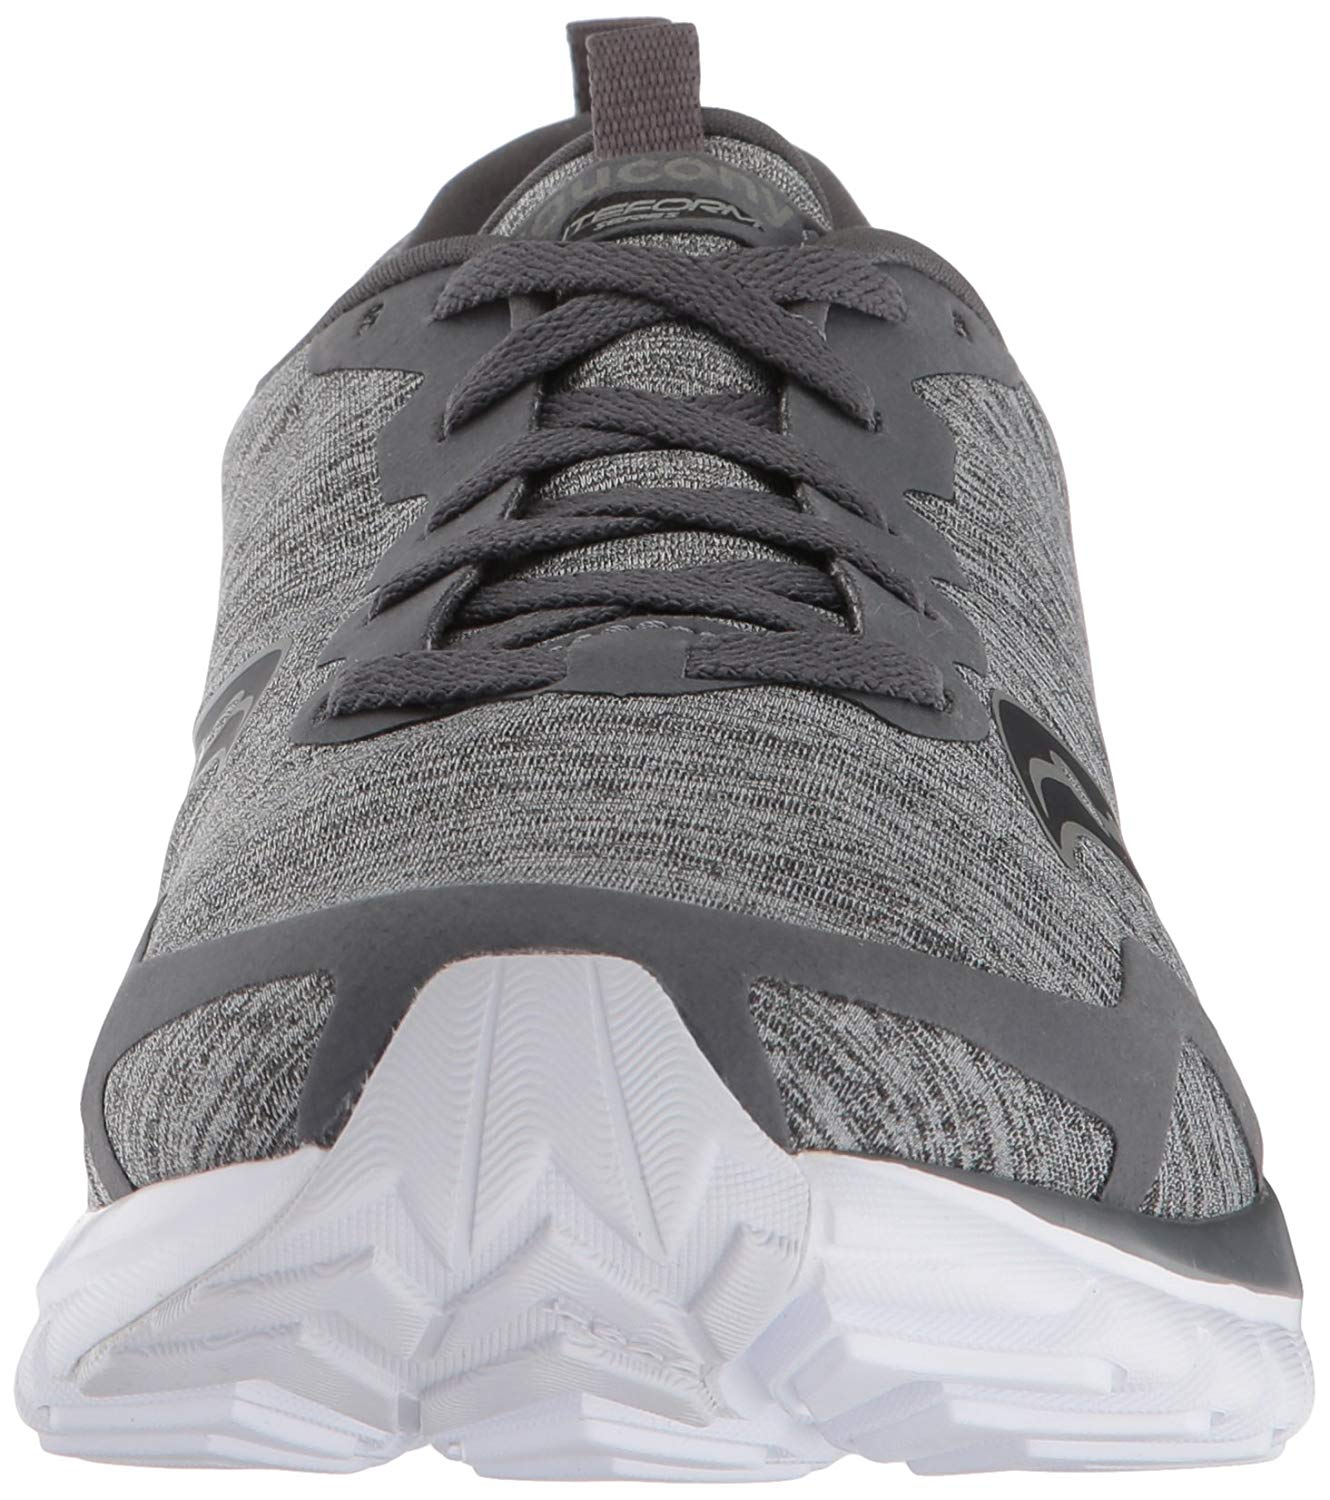 7307873ecf84a Details about Saucony Mens LITEFORM FEEL Low Top Lace Up Fashion Sneakers